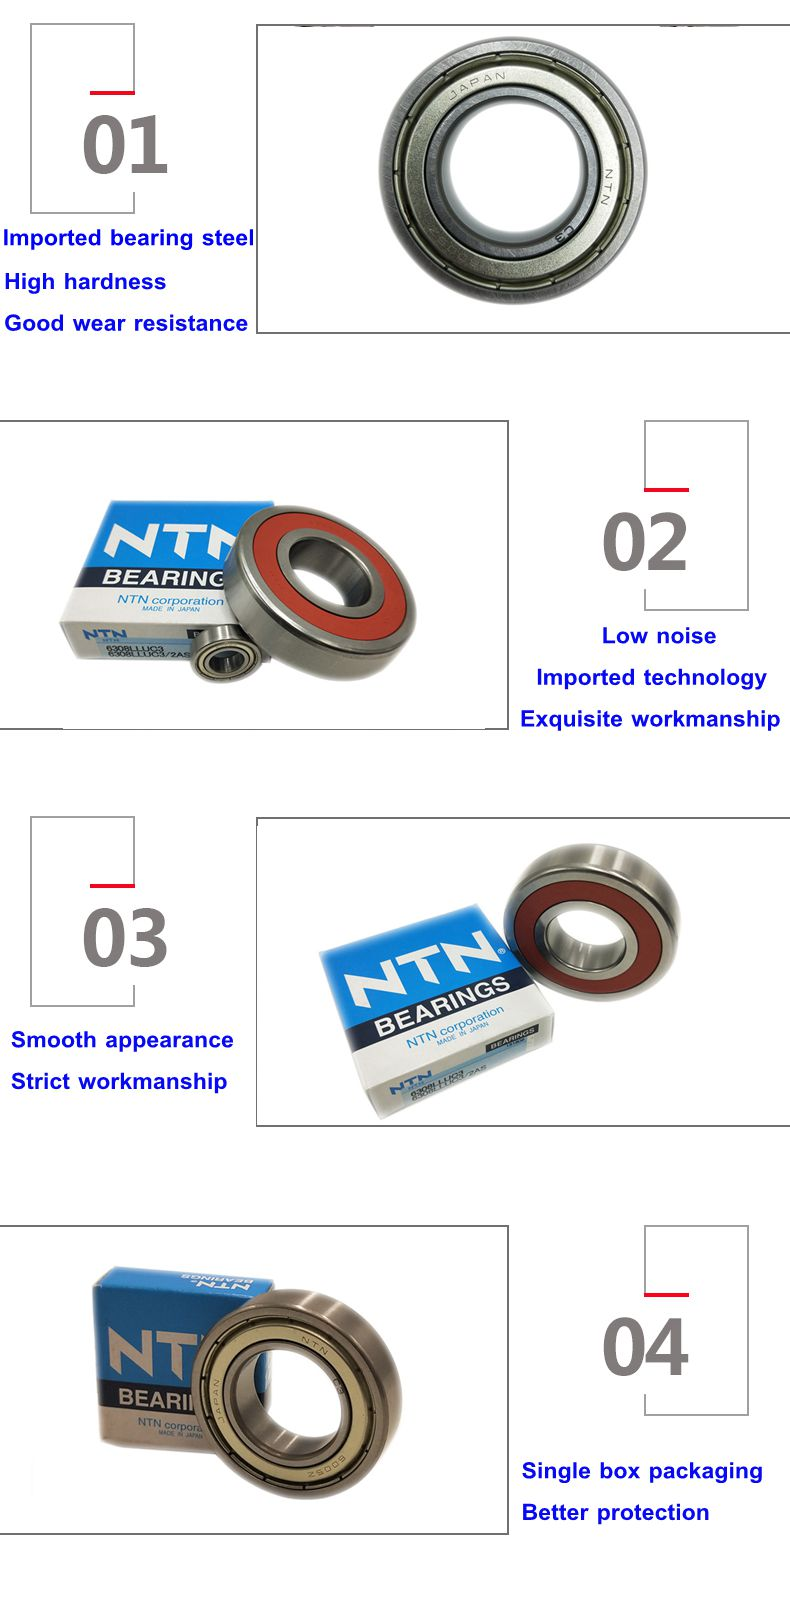 Cheap price NTN deep groove ball bearing 6000 6001 6002 6003 6004 6005 LLU ZZ P0 precision NTN bearing for Ukraine